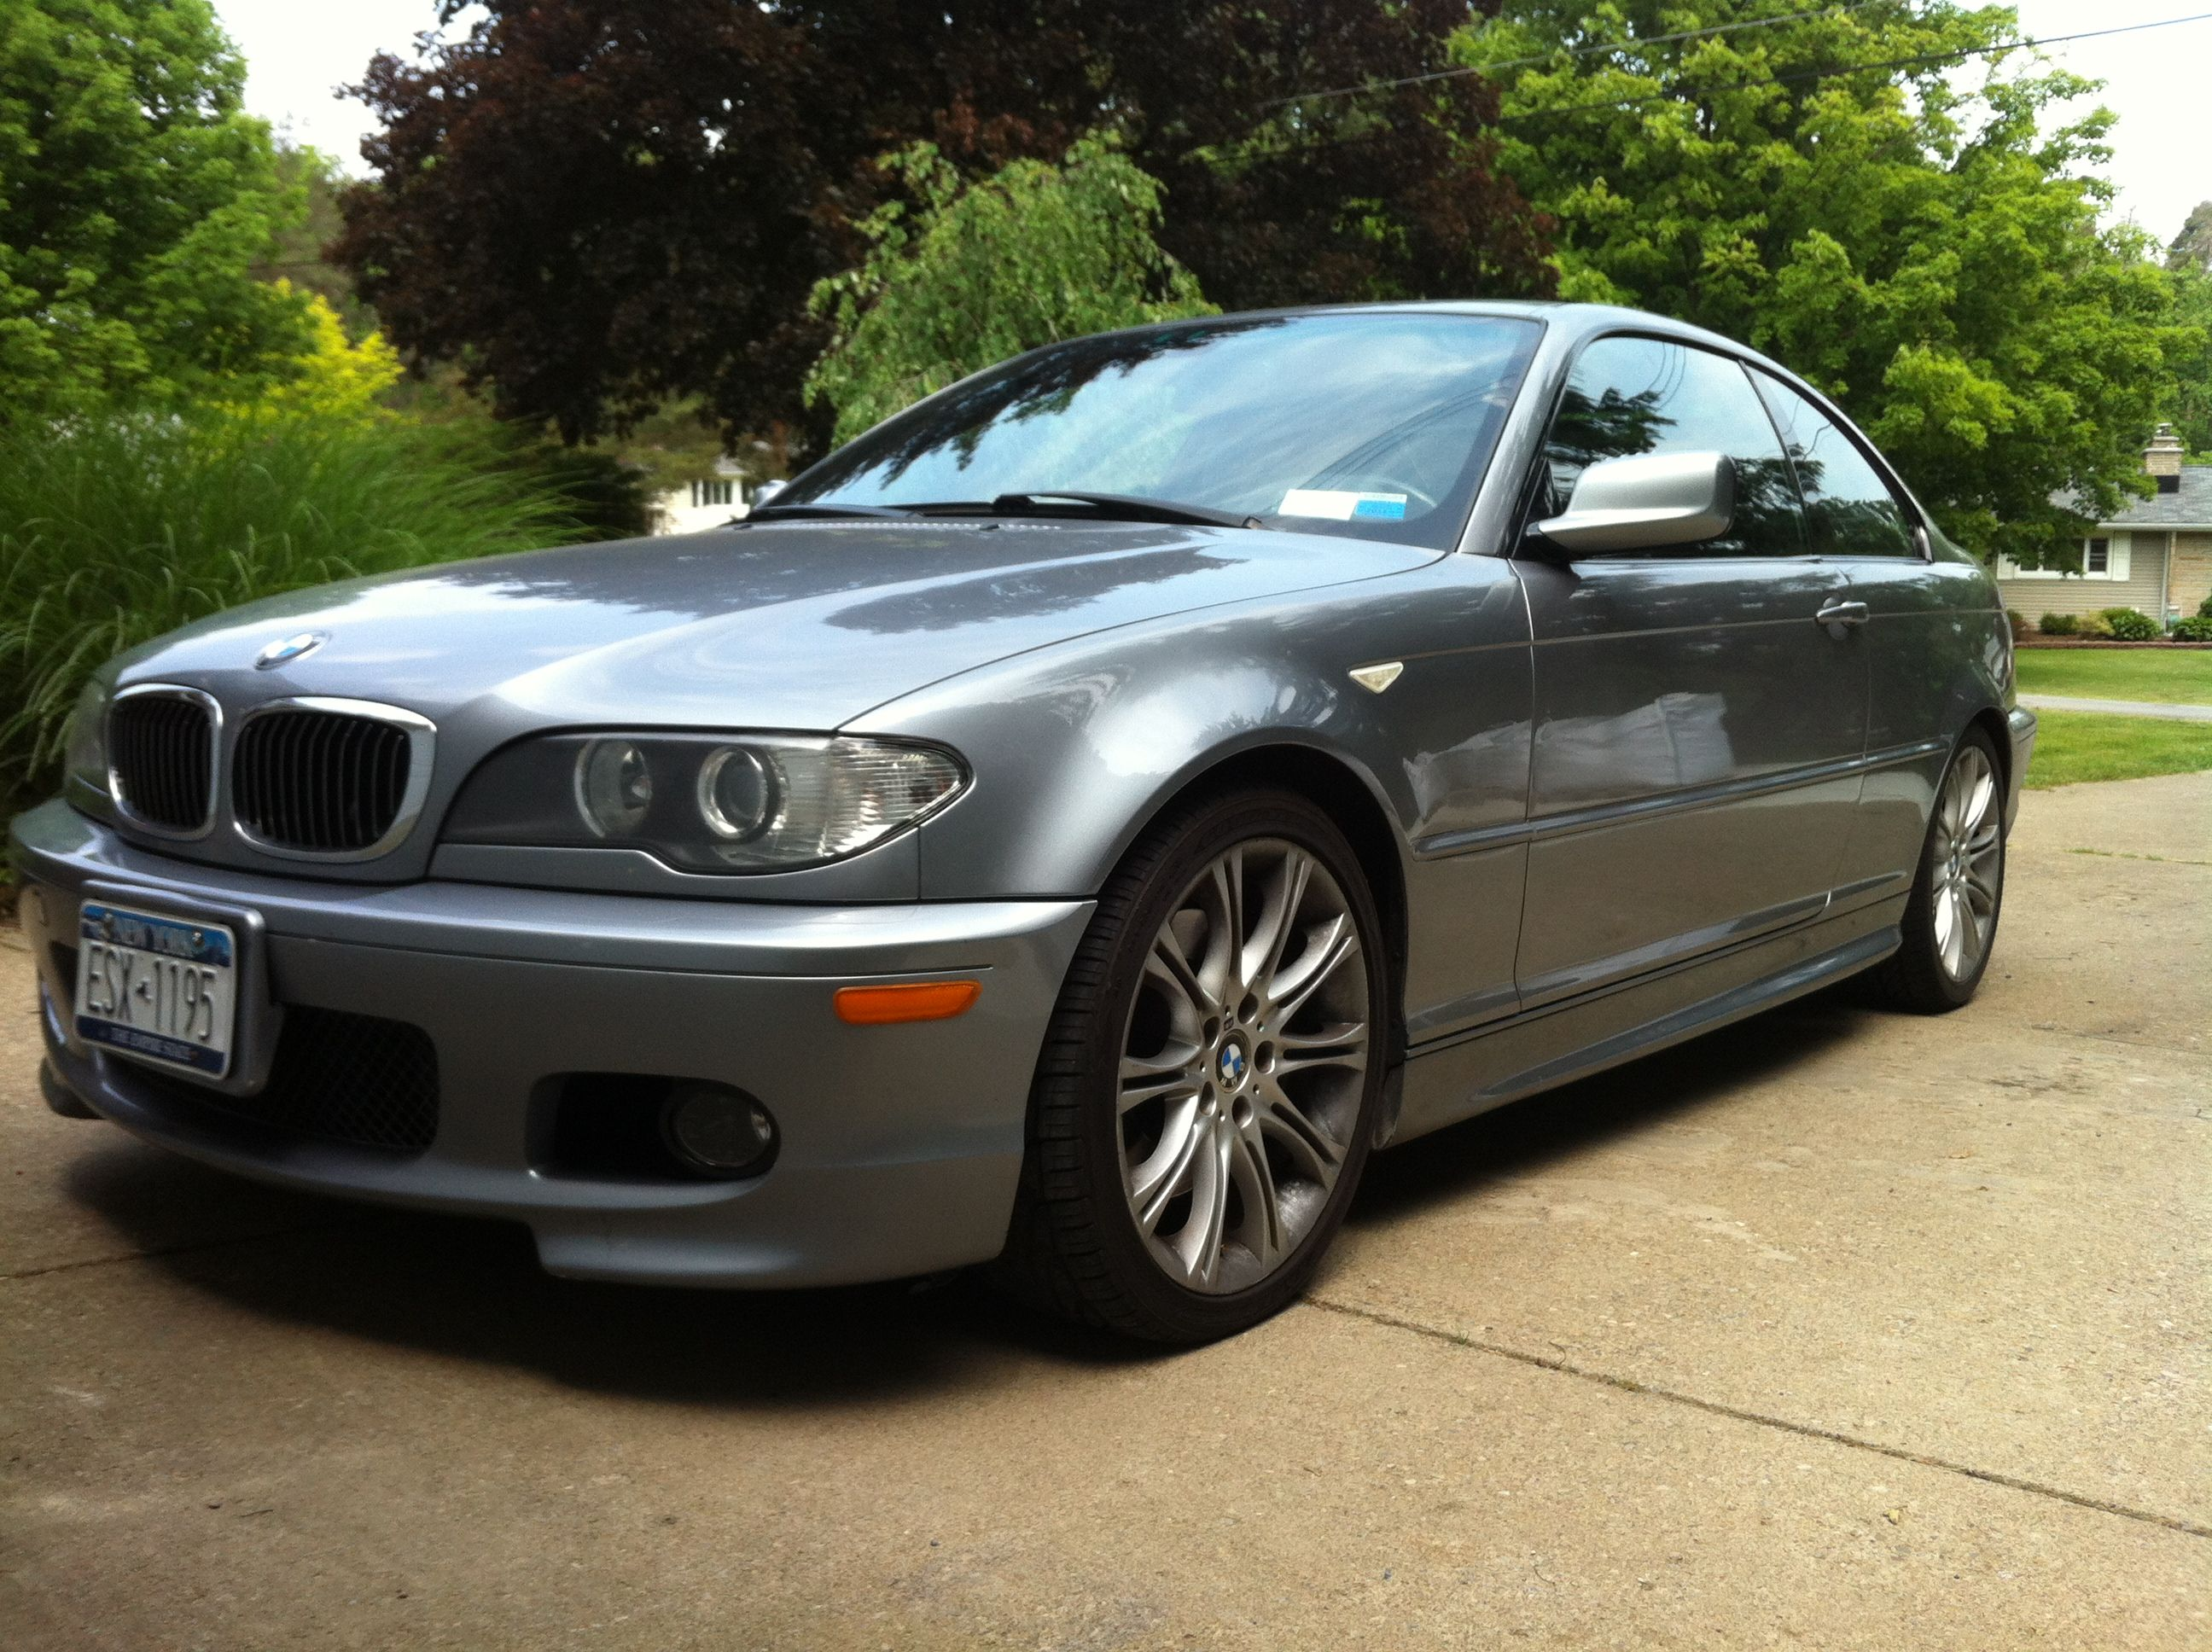 hight resolution of bmw 330ci zhp mine was a 330cic convertible in this color best car i ever owned